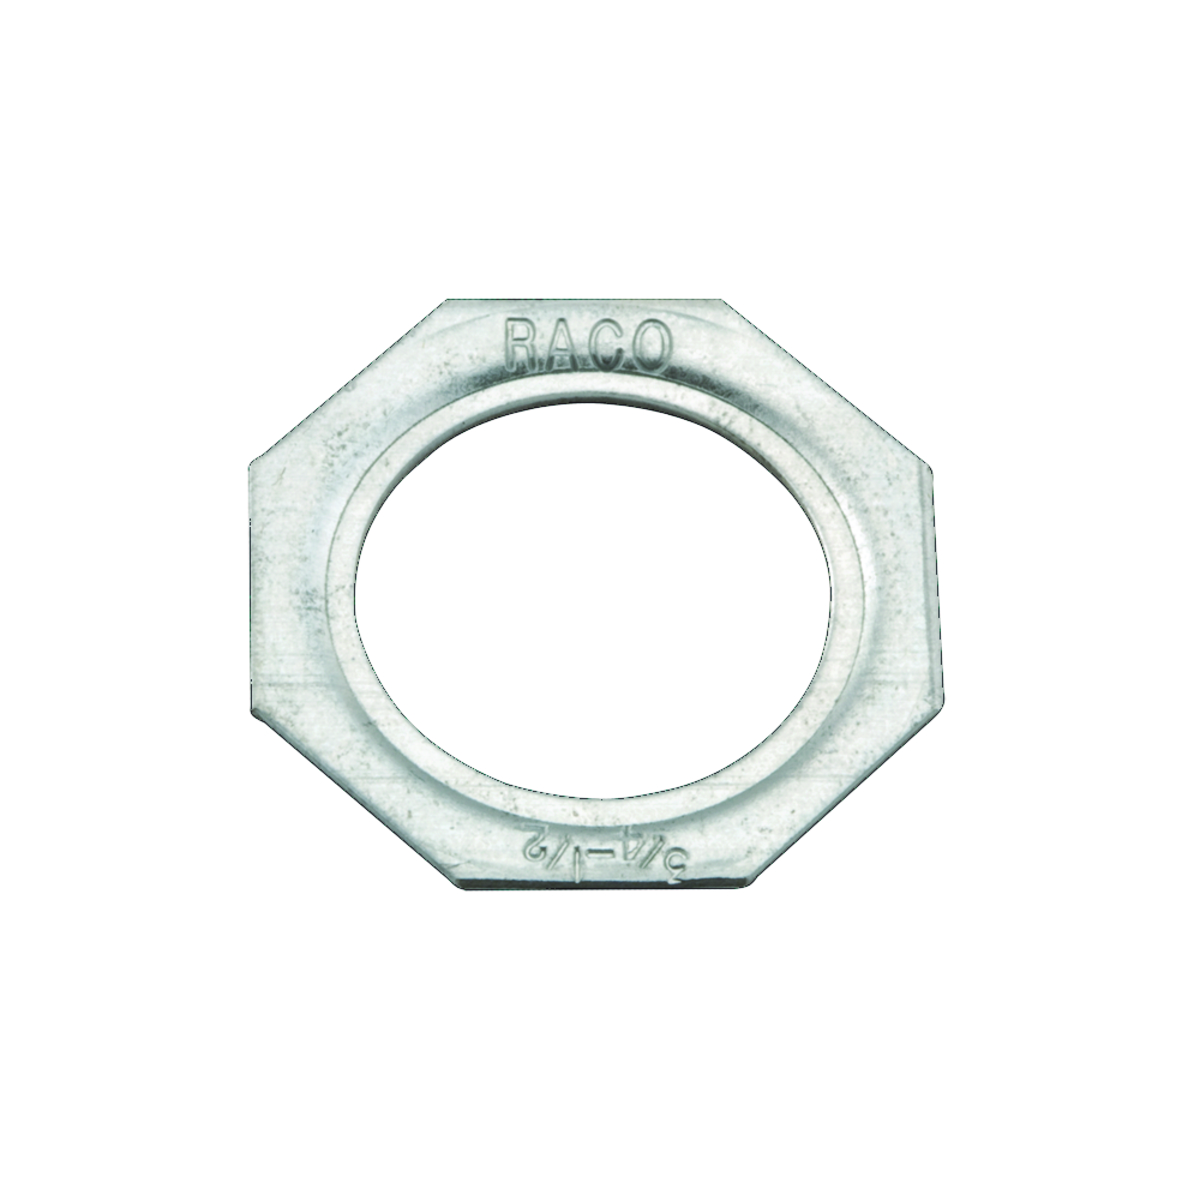 Hubbell-Raco 1366 Conduit Washer